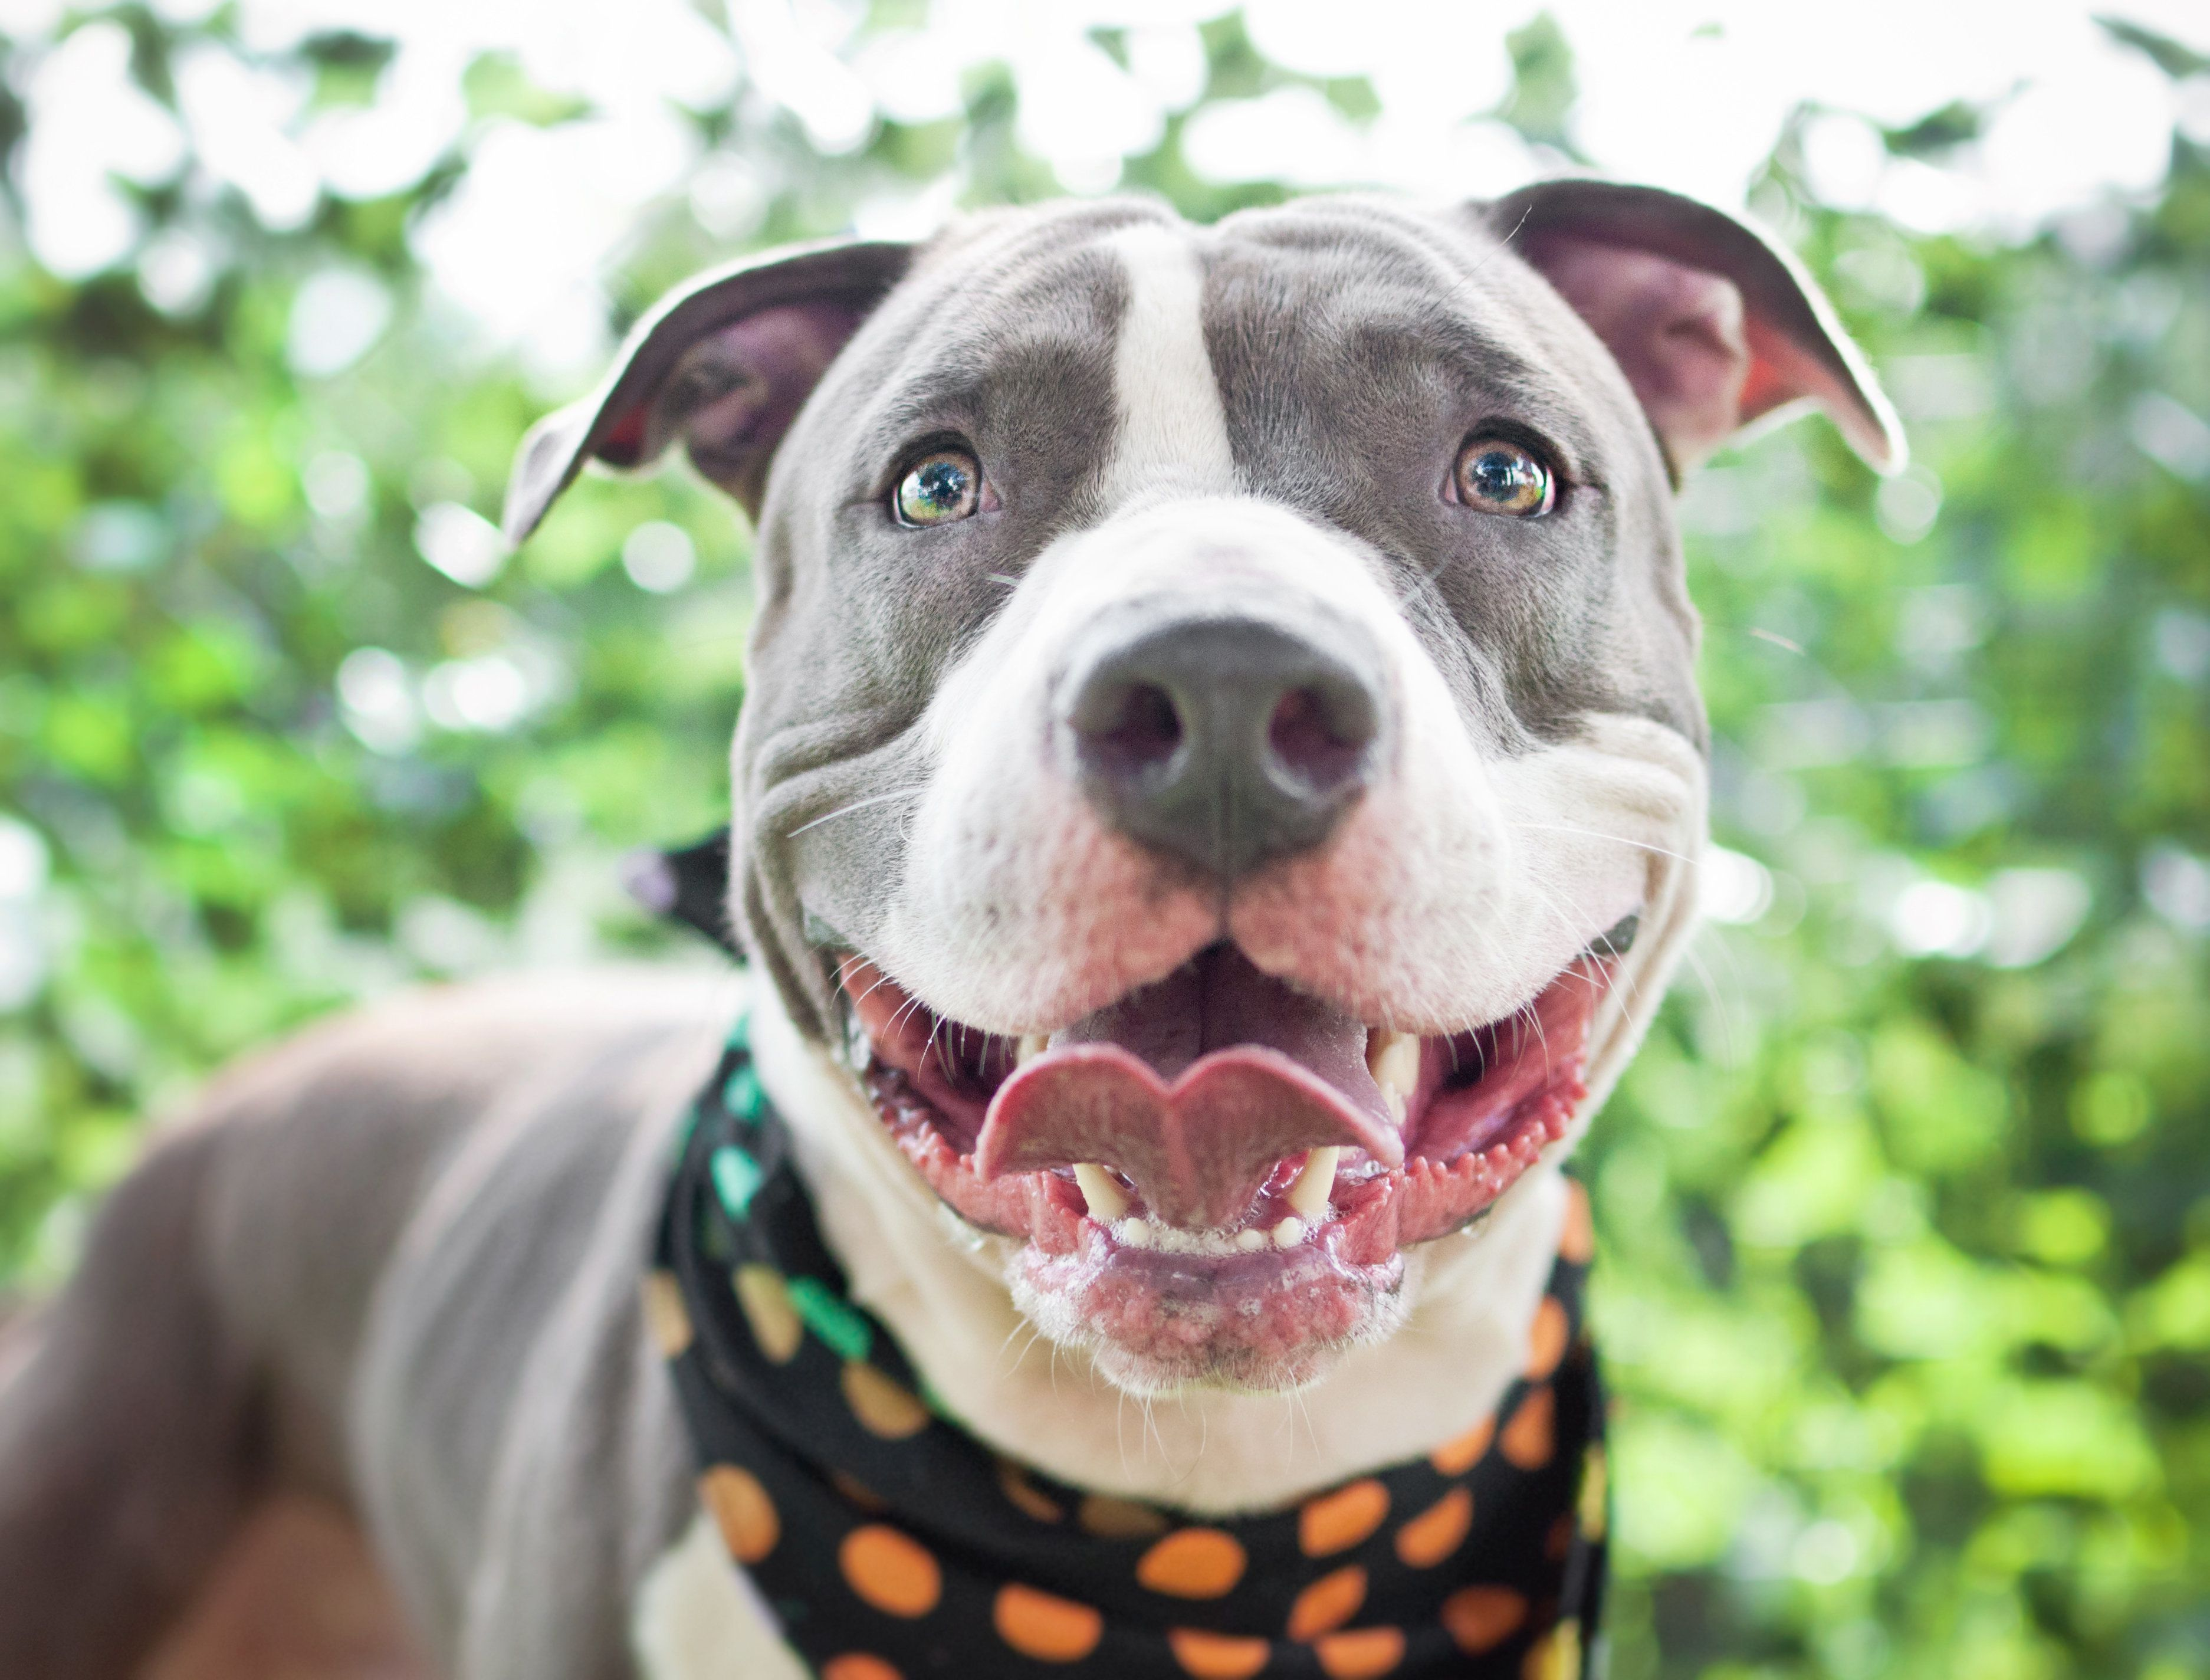 A gray and white Pit Bull mixed breed dog smiles happily outdoors.